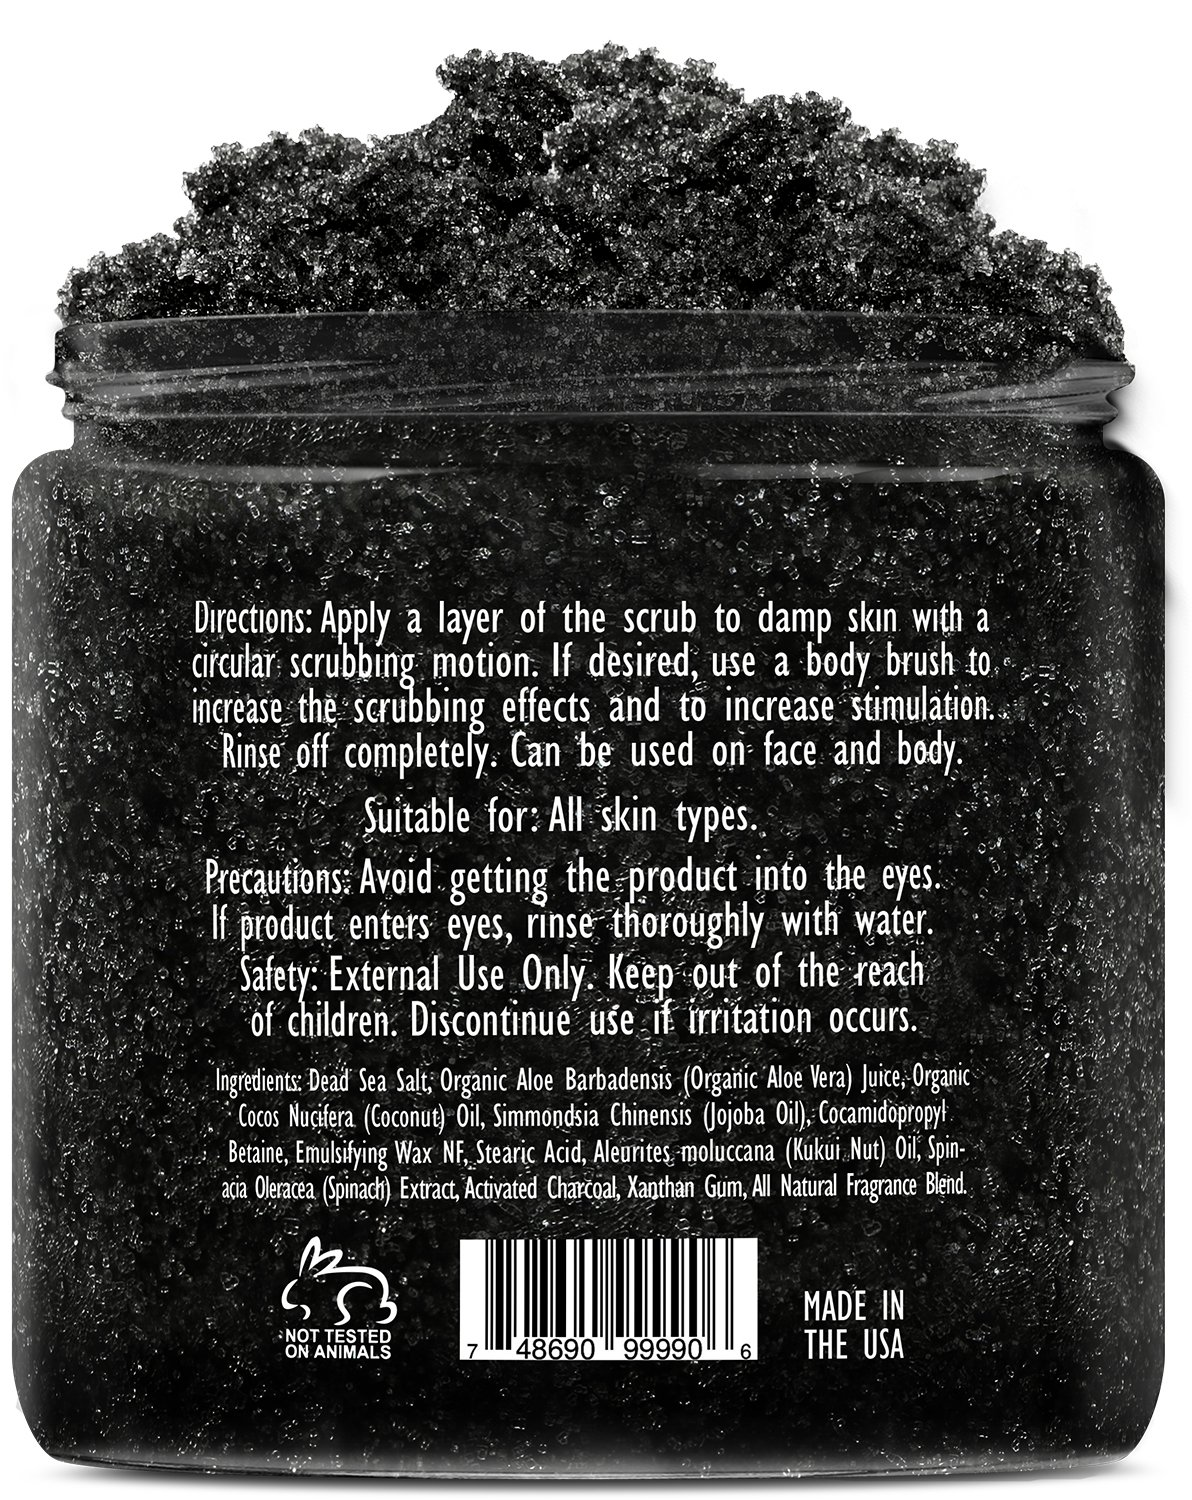 Premium Activated Charcoal Scrub 10 oz - For Deep Cleansing & Exfoliation - Pore Minimizer & Reduces Wrinkles, Acne Scars, Blackhead Remover & Anti Cellulite Treatment - Body Scrub & Facial Cleanser by Brooklyn Botany (Image #3)